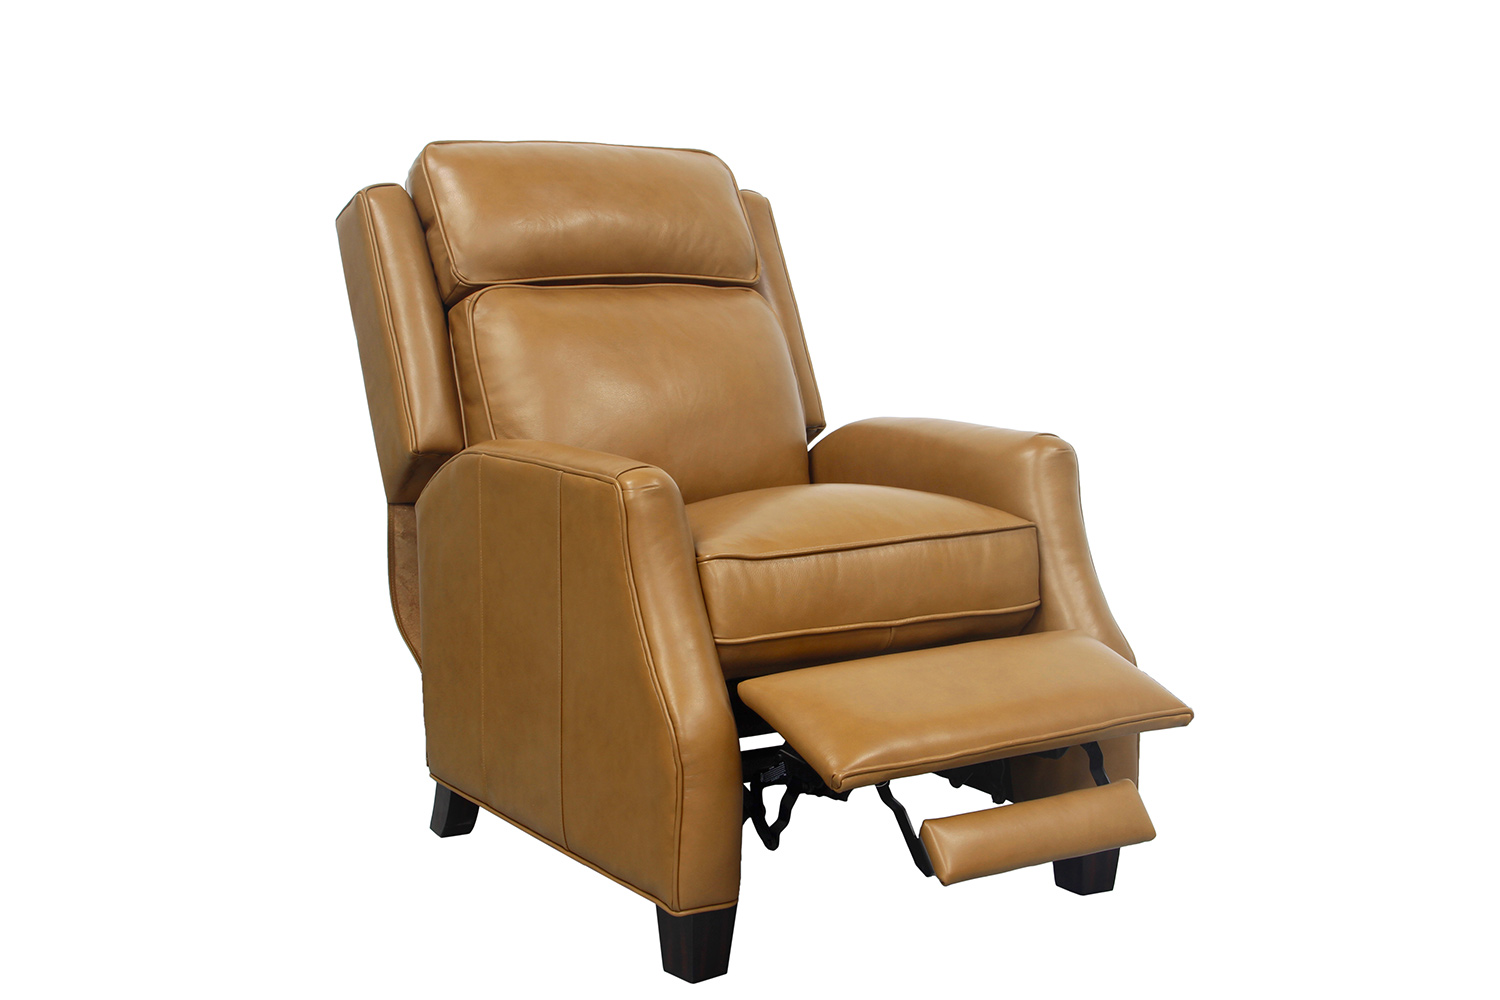 Barcalounger Nixon Recliner Chair - Shoreham Ponytail/All Leather